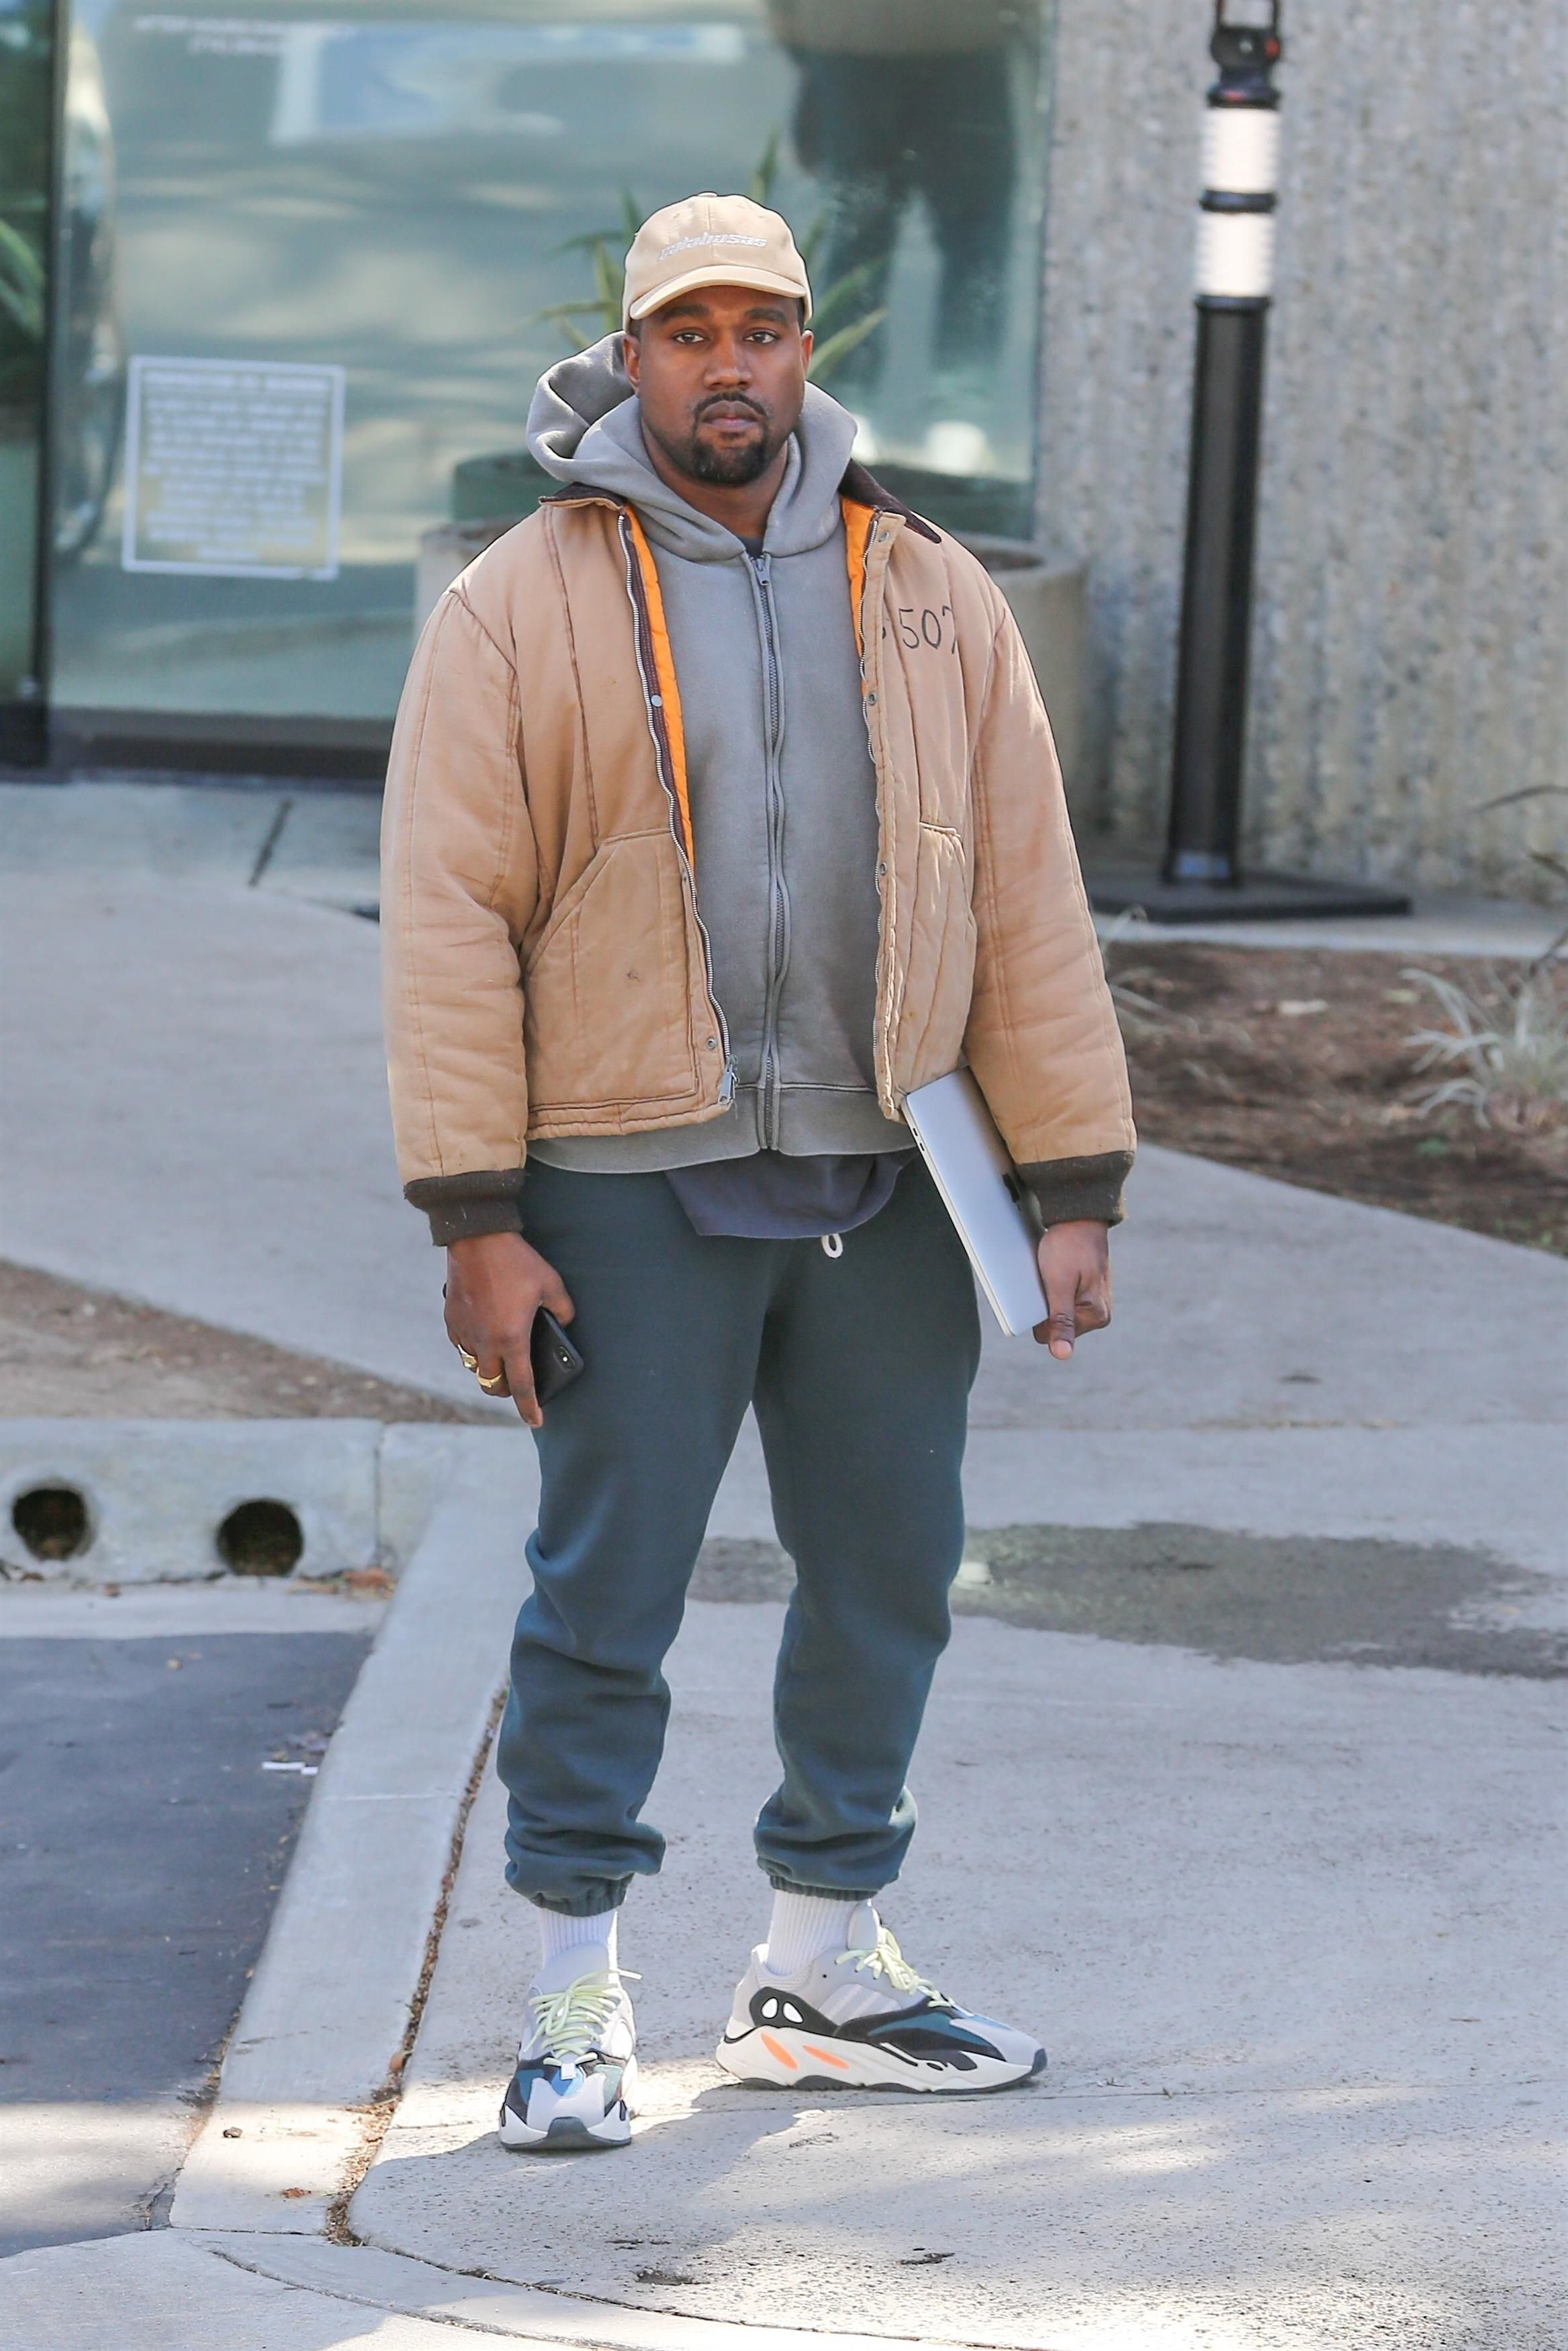 Kanye West Arrives At His Office On Looklive Kanye West Style Kanye West Outfits Kanye Fashion